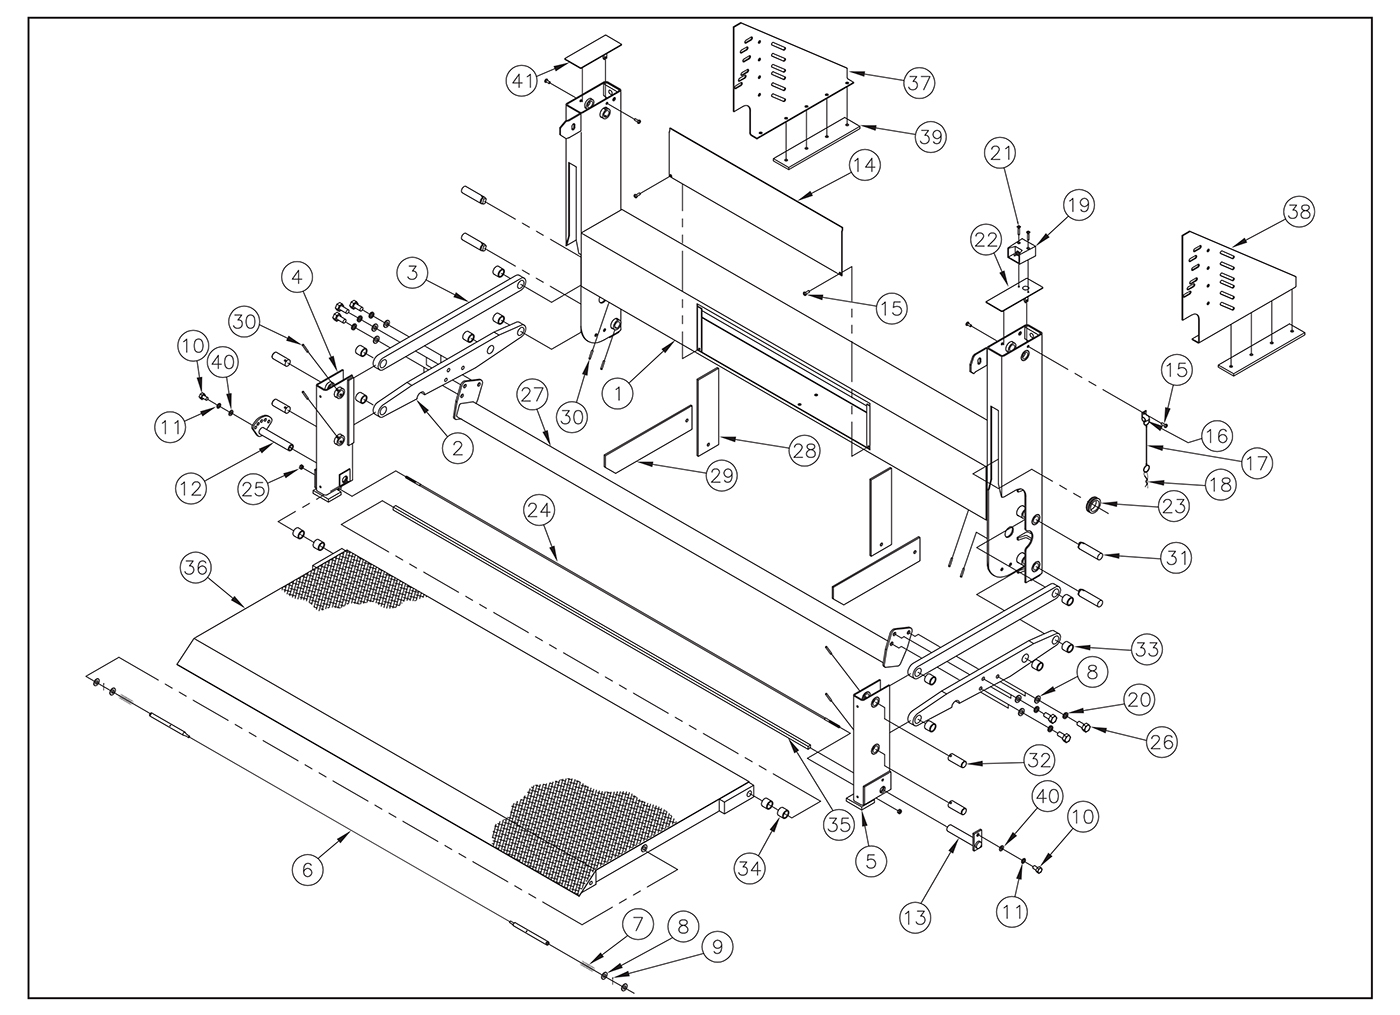 TT20ETAL Undercarriage & Platform Assembly Diagram